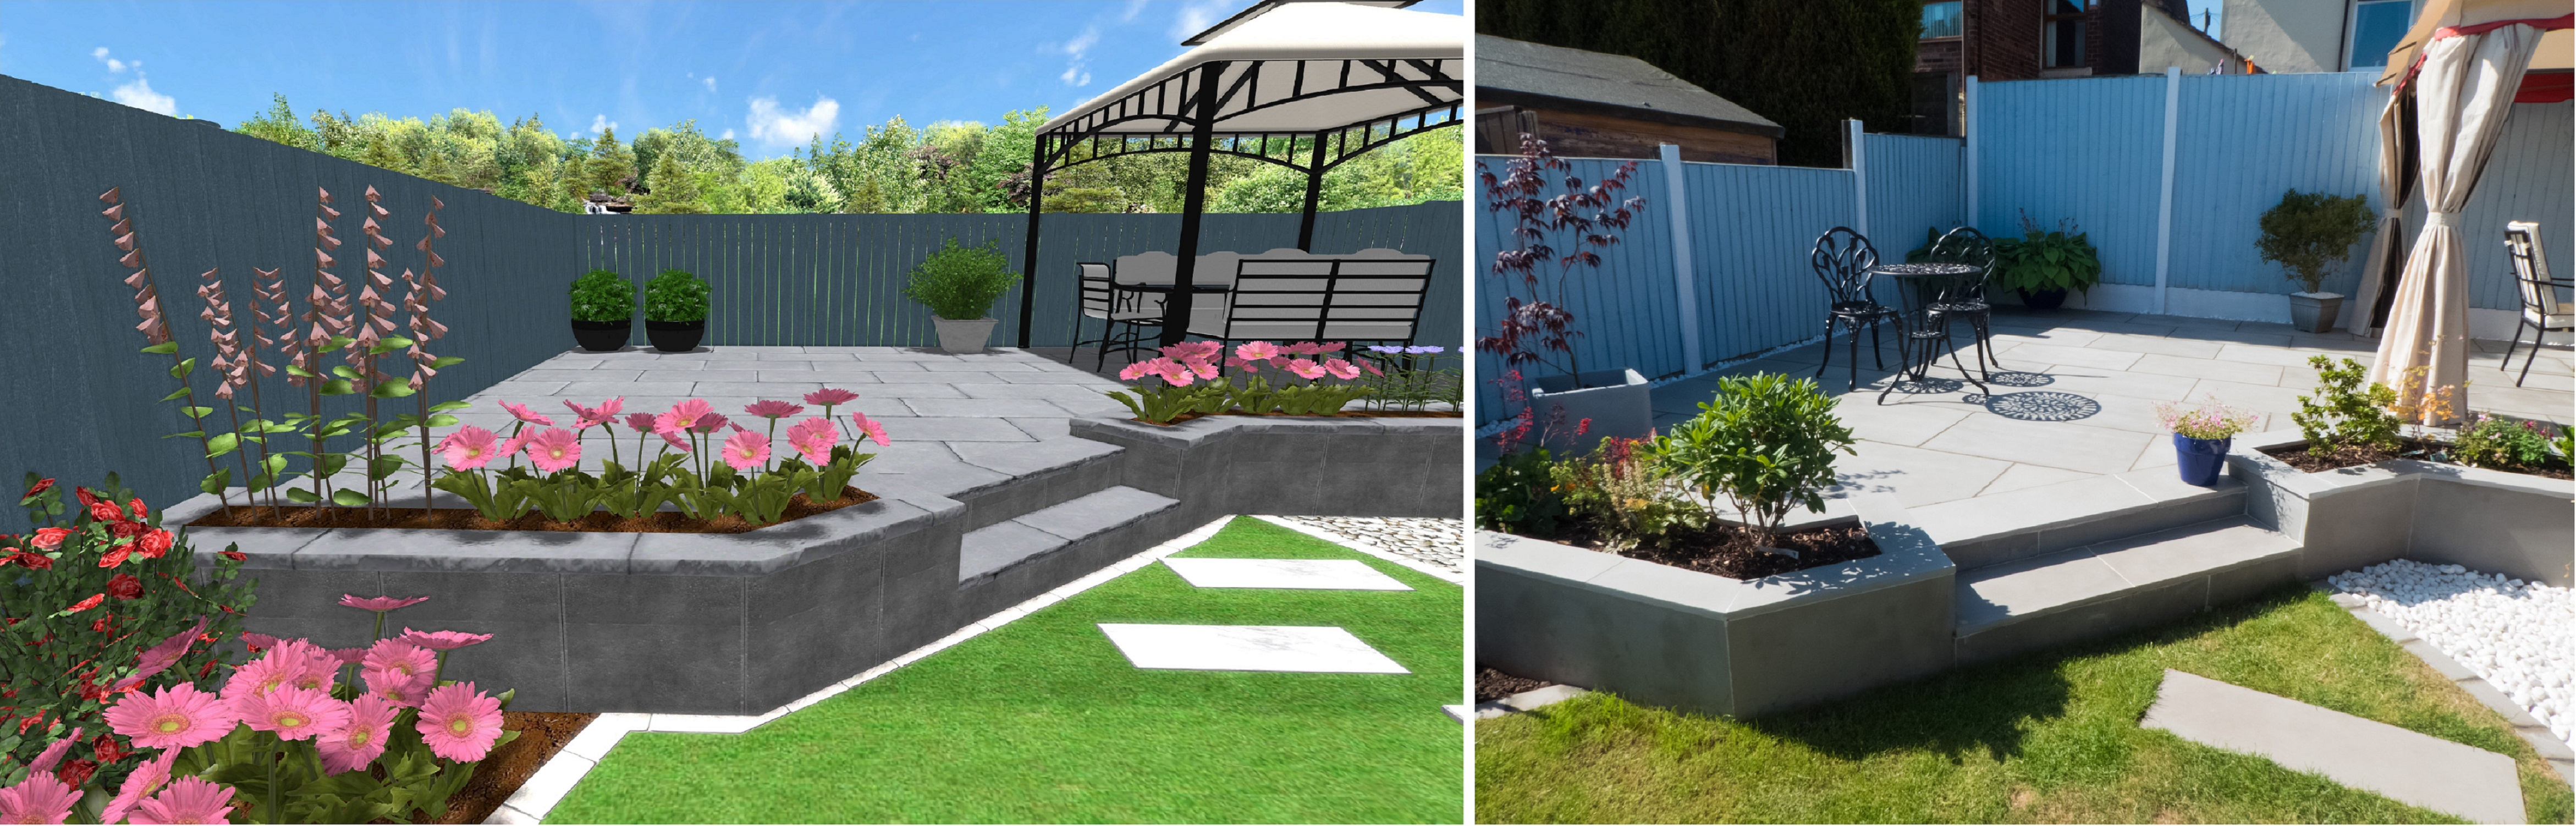 3D CAD Design and Completed Modern Landscaping